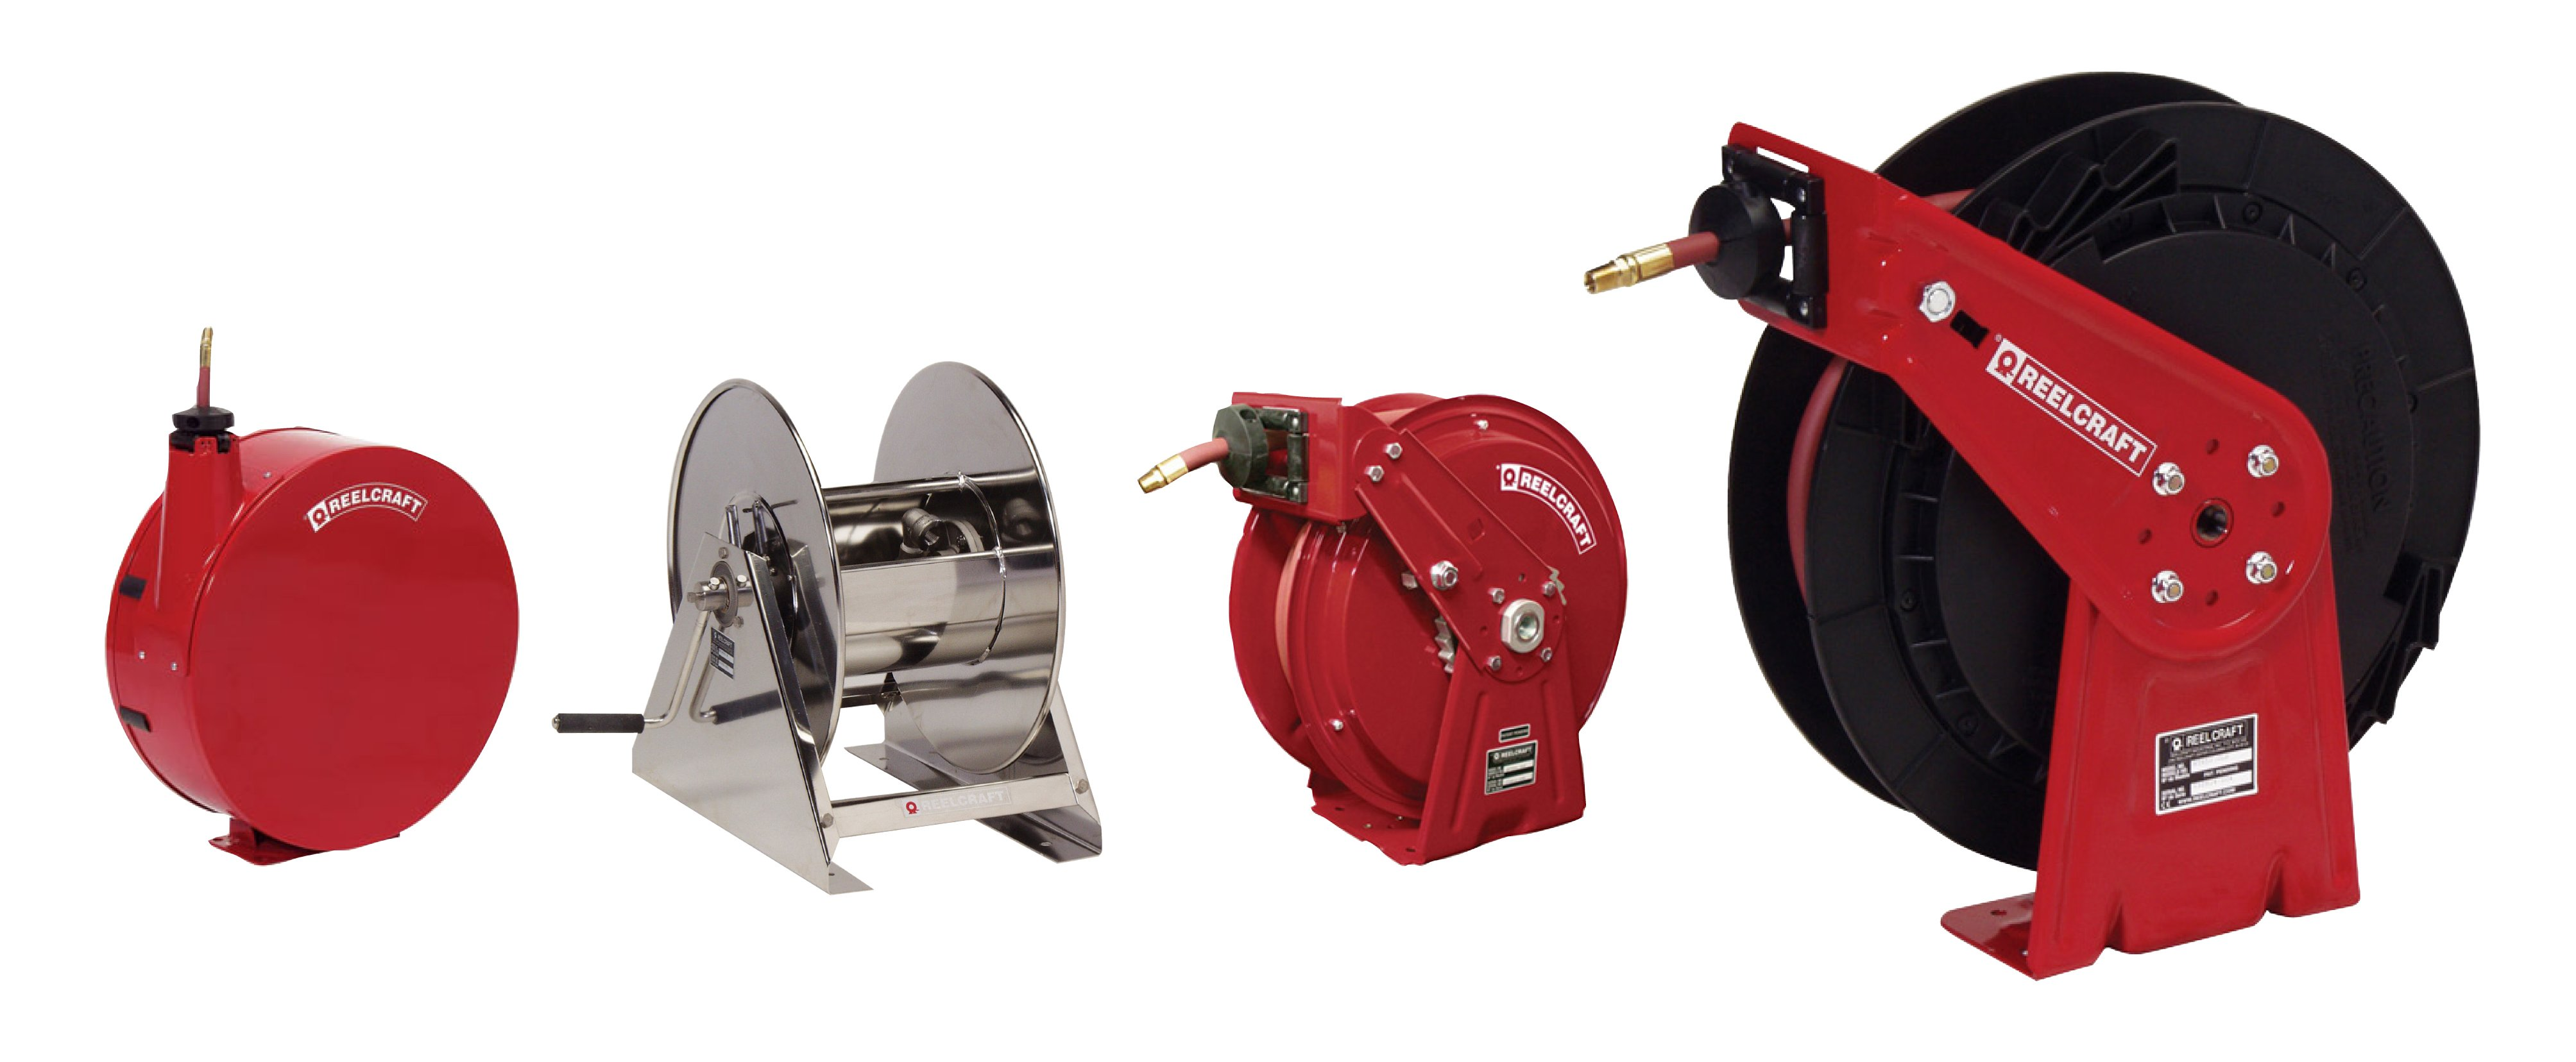 100 Air//Water Hose Not Included 100/' Air//Water Hose Not Included Reelcraft CT8100LN Light Industrial Hand Crank Hose Reel